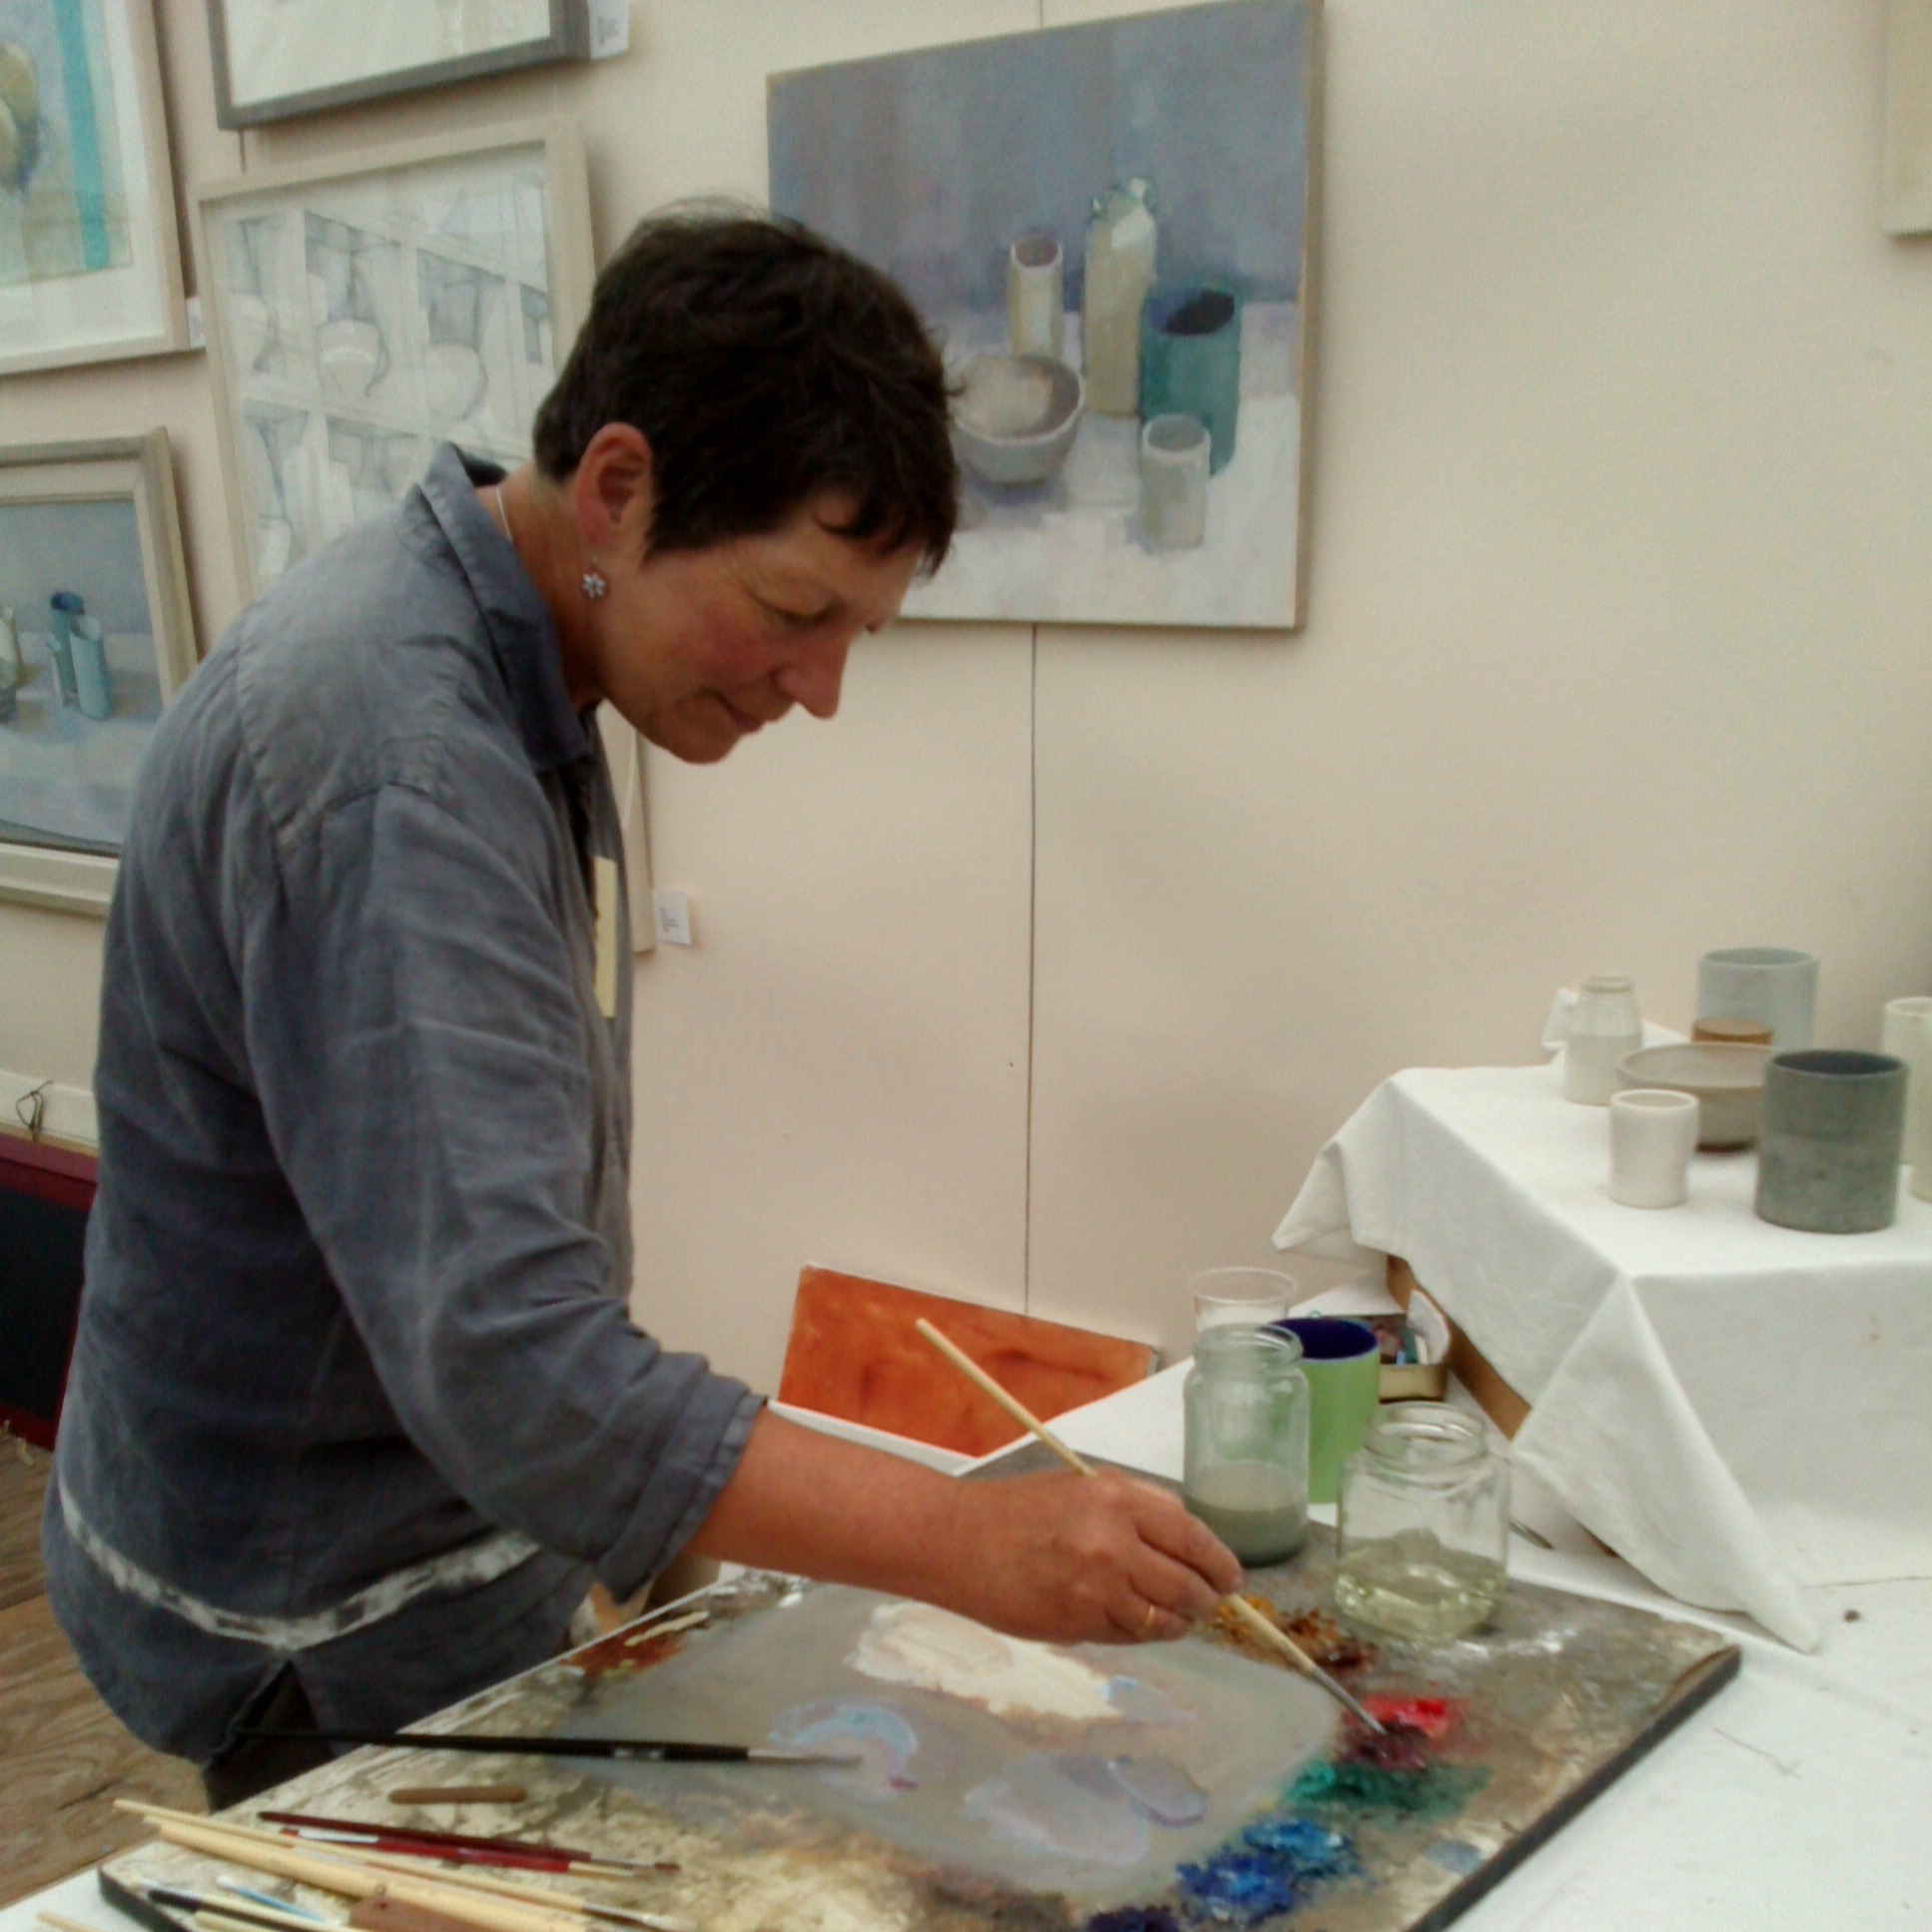 Decorator S Notebook Blog: Getting Creative At Art In Action